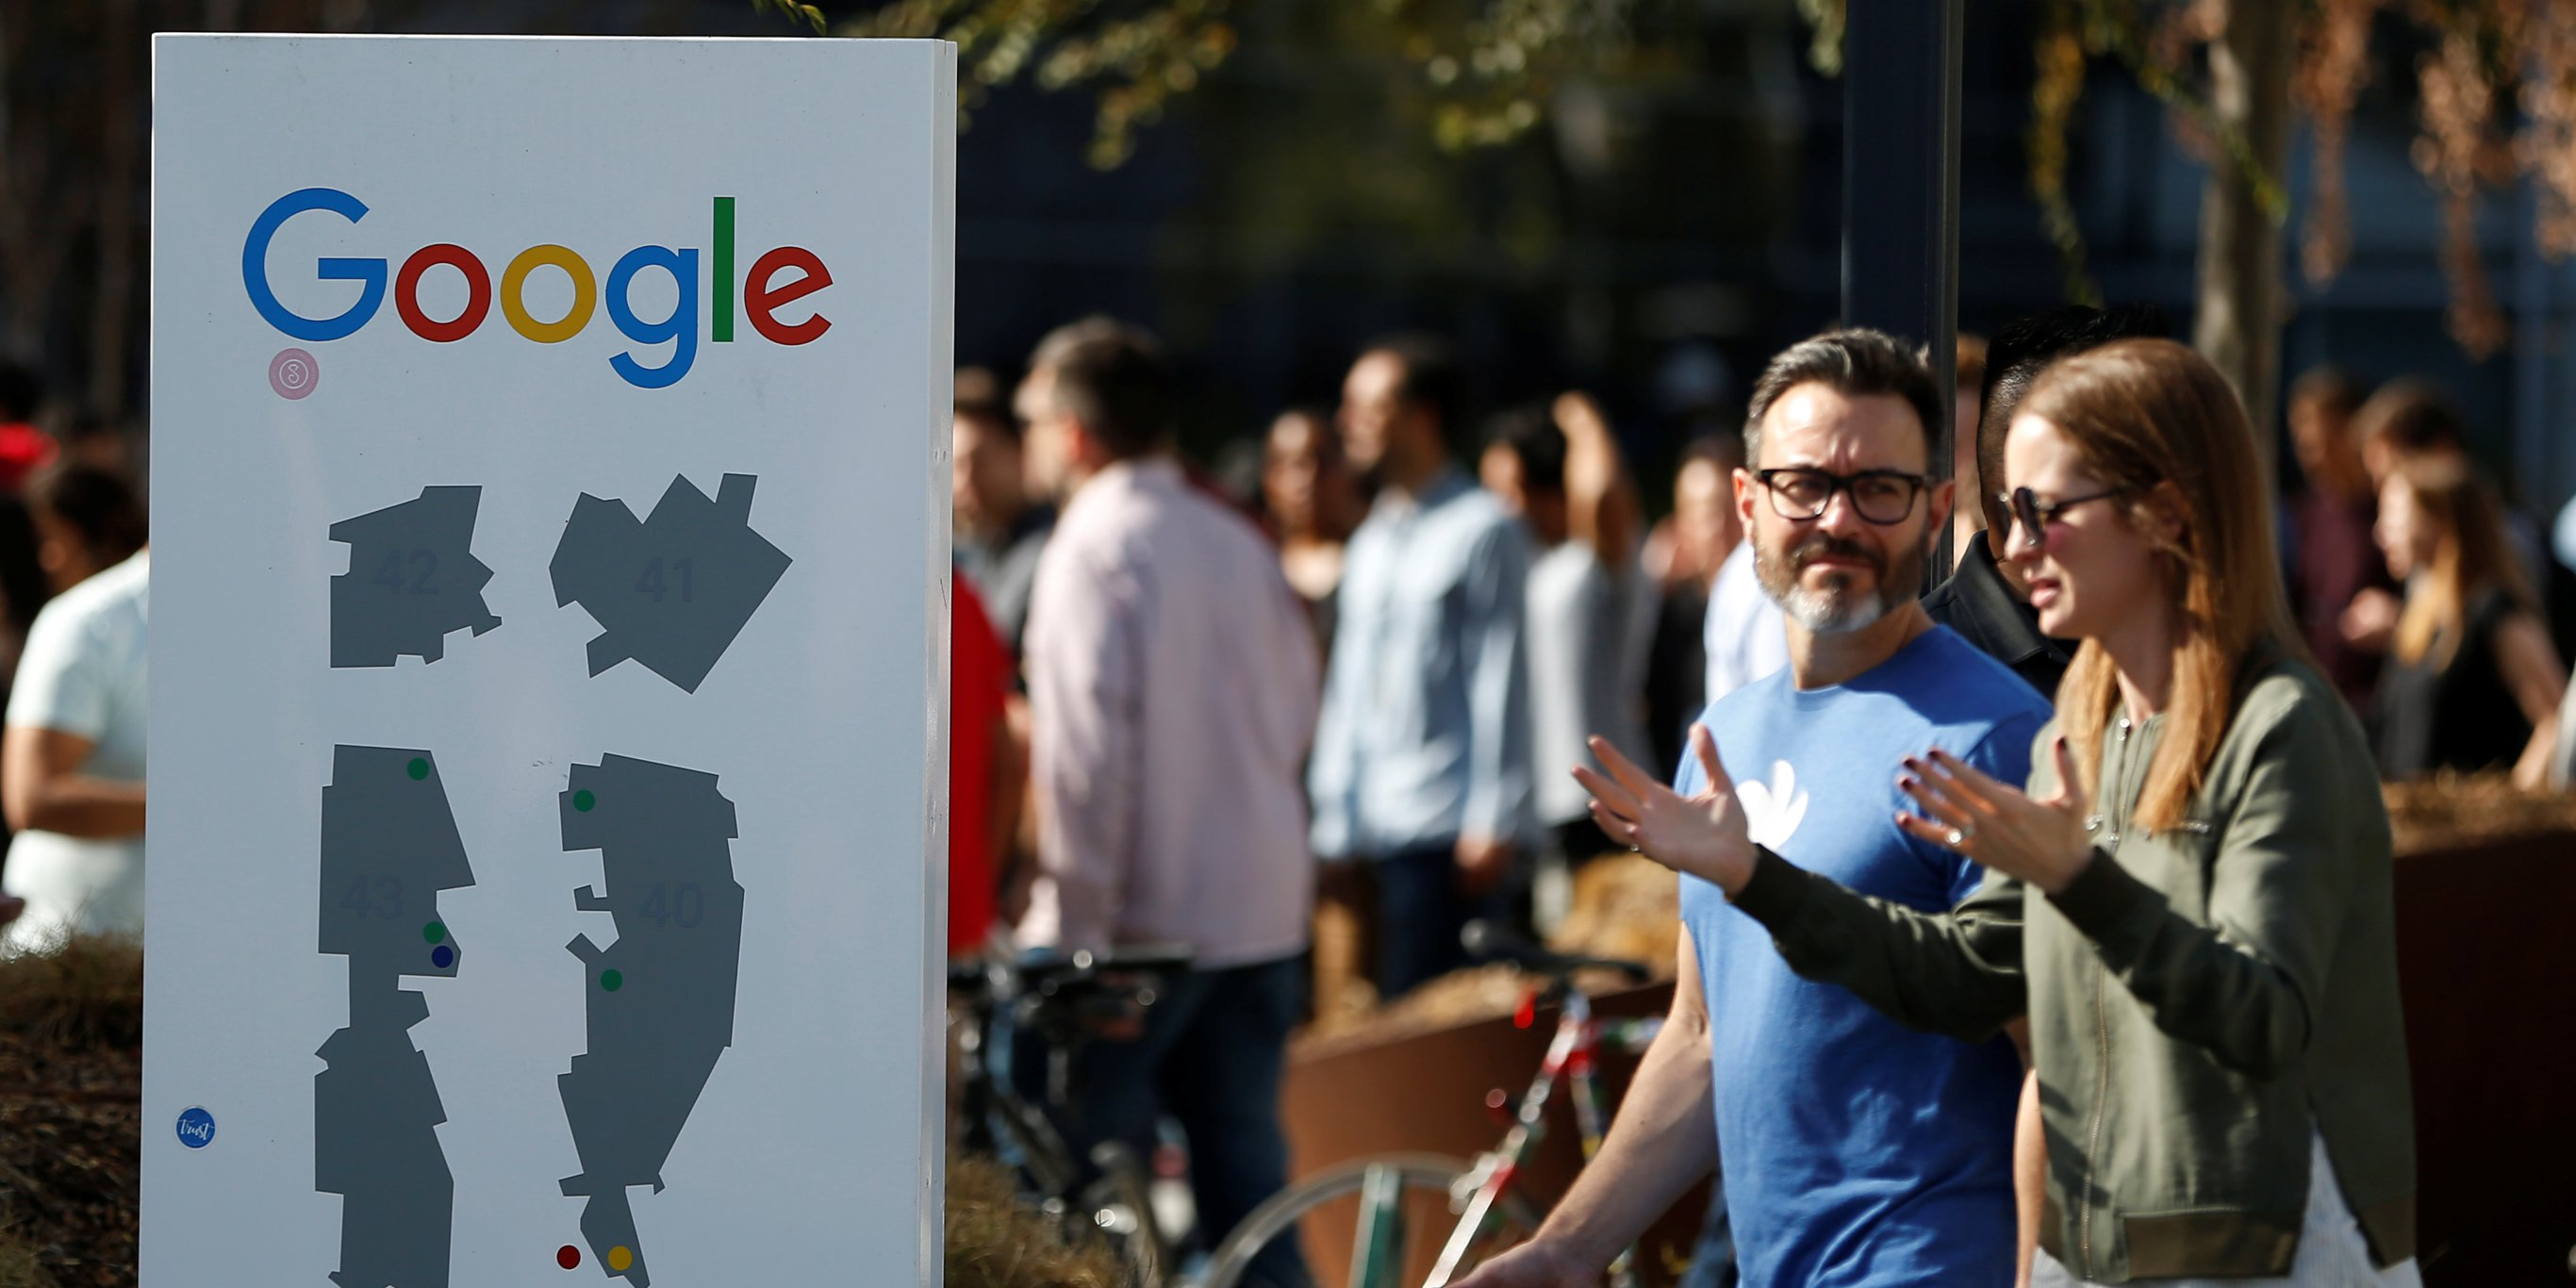 Another key employee activist is leaving Google amid claims of burnout and 'retaliation,' but says the 'movement is strong' (GOOG, GOOGL)